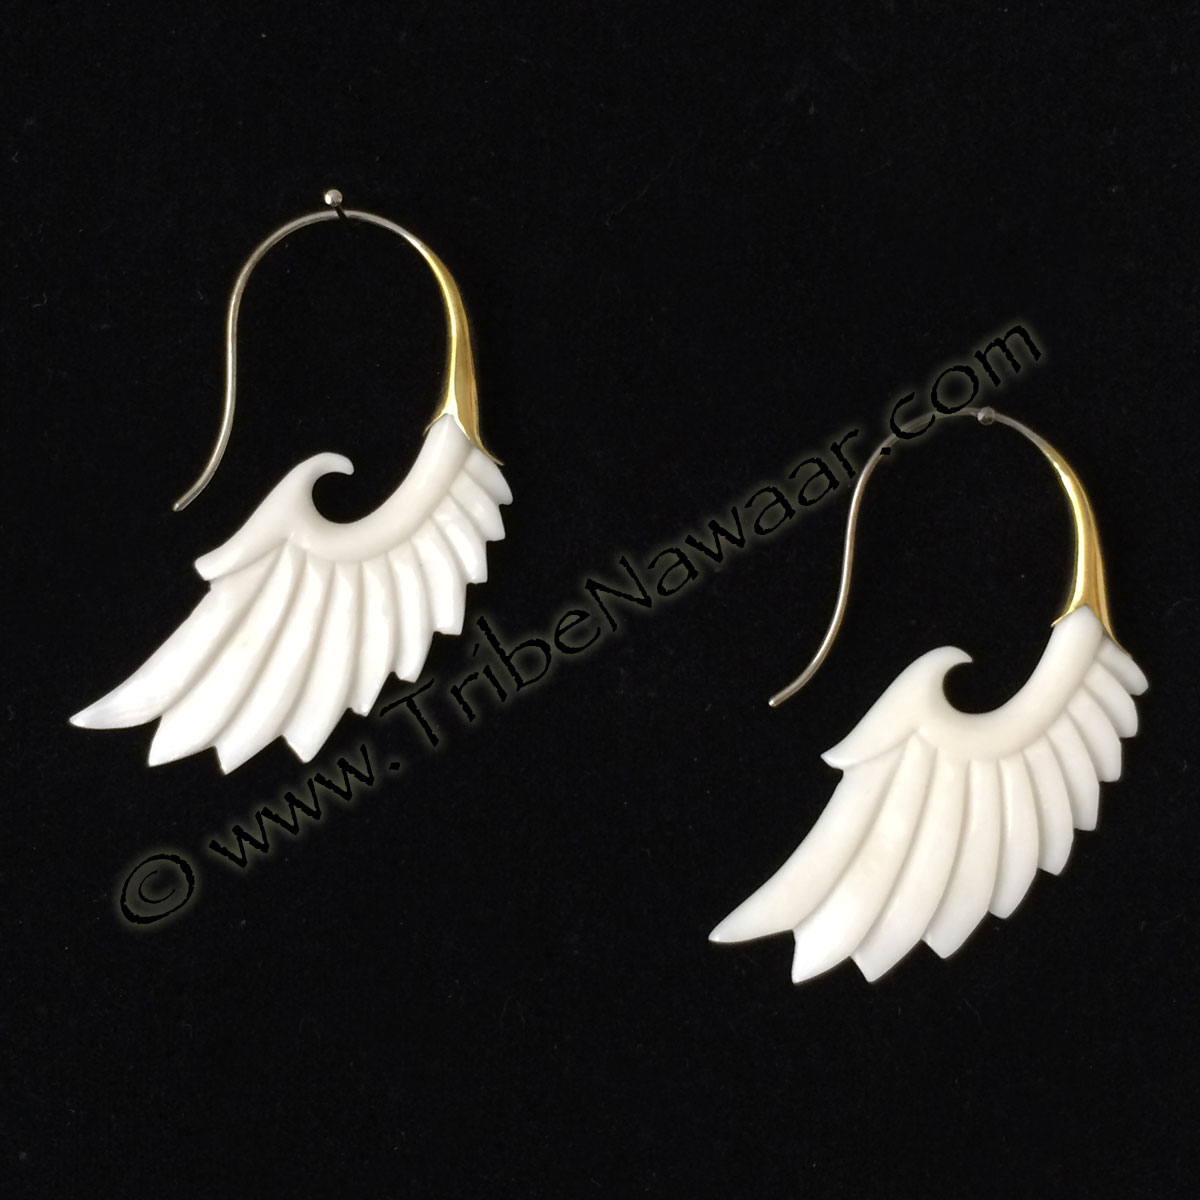 Tribe Nawaar's brass & bone earrings